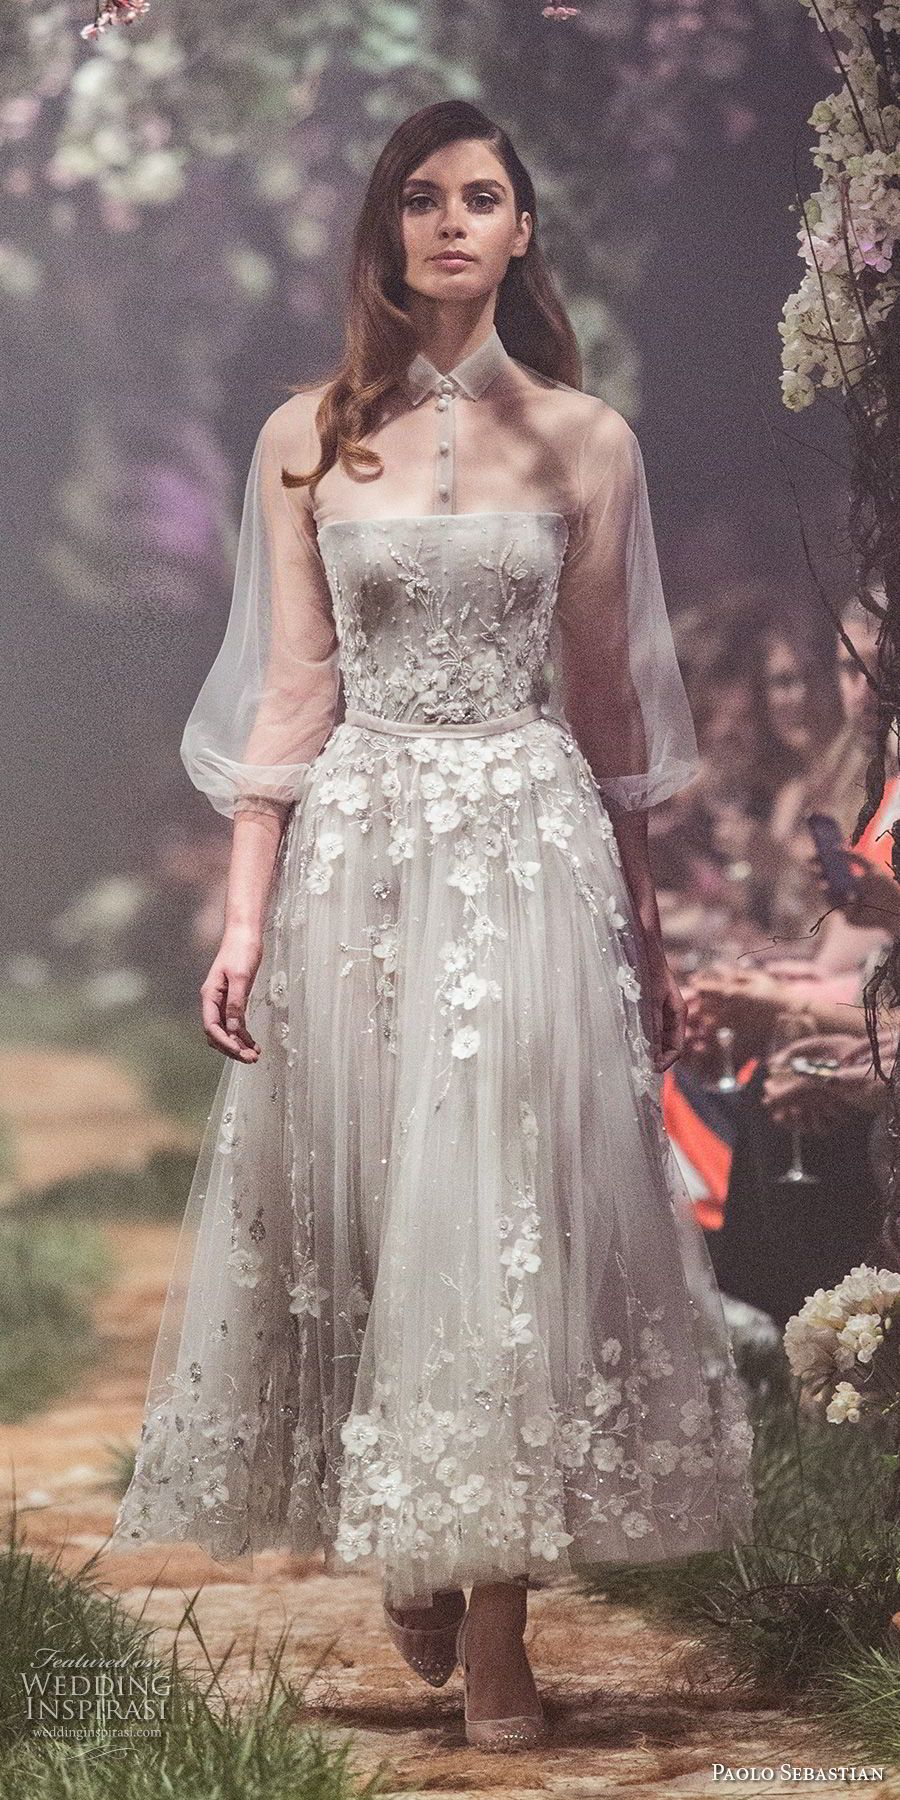 872eff558b55 paolo sebastian spring 2018 couture three quarter bishop sleeves collar  shirt full embellishment romantic gray tea length short wedding dress (22)  mv ...